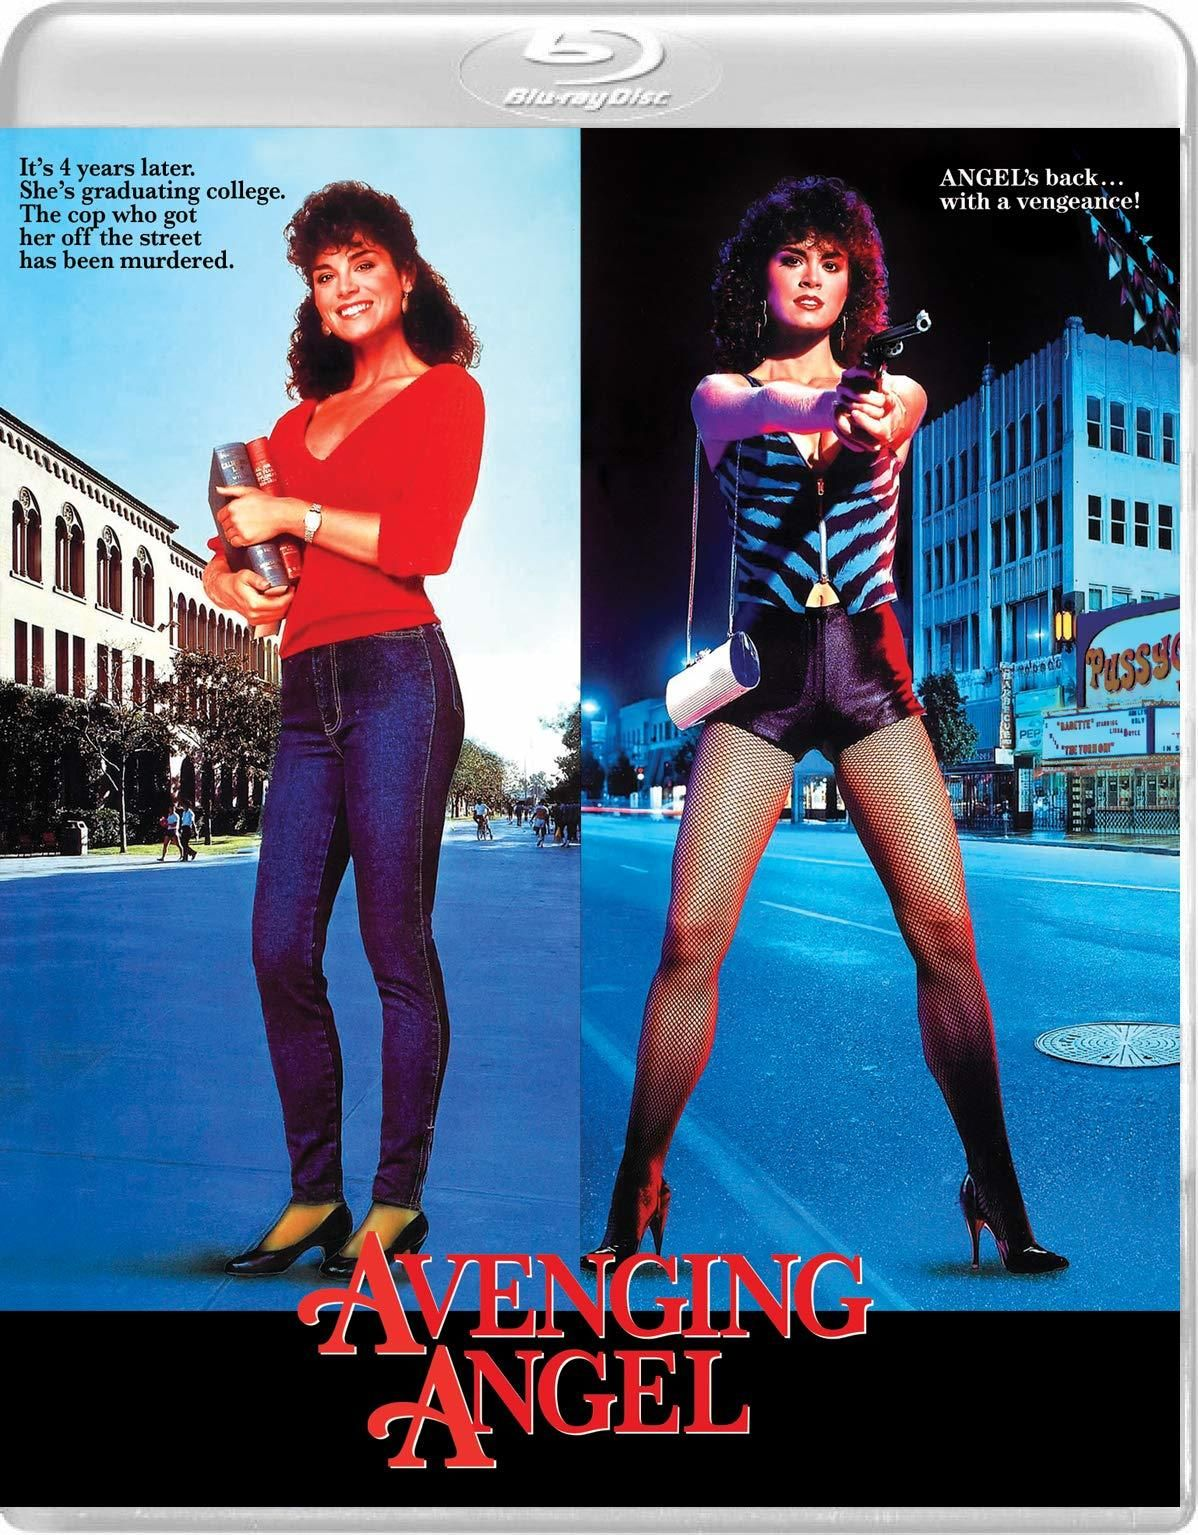 Avenging Angel Blu Ray Release Date March 31 2020 Blu Ray Blu Blu Ray Movies